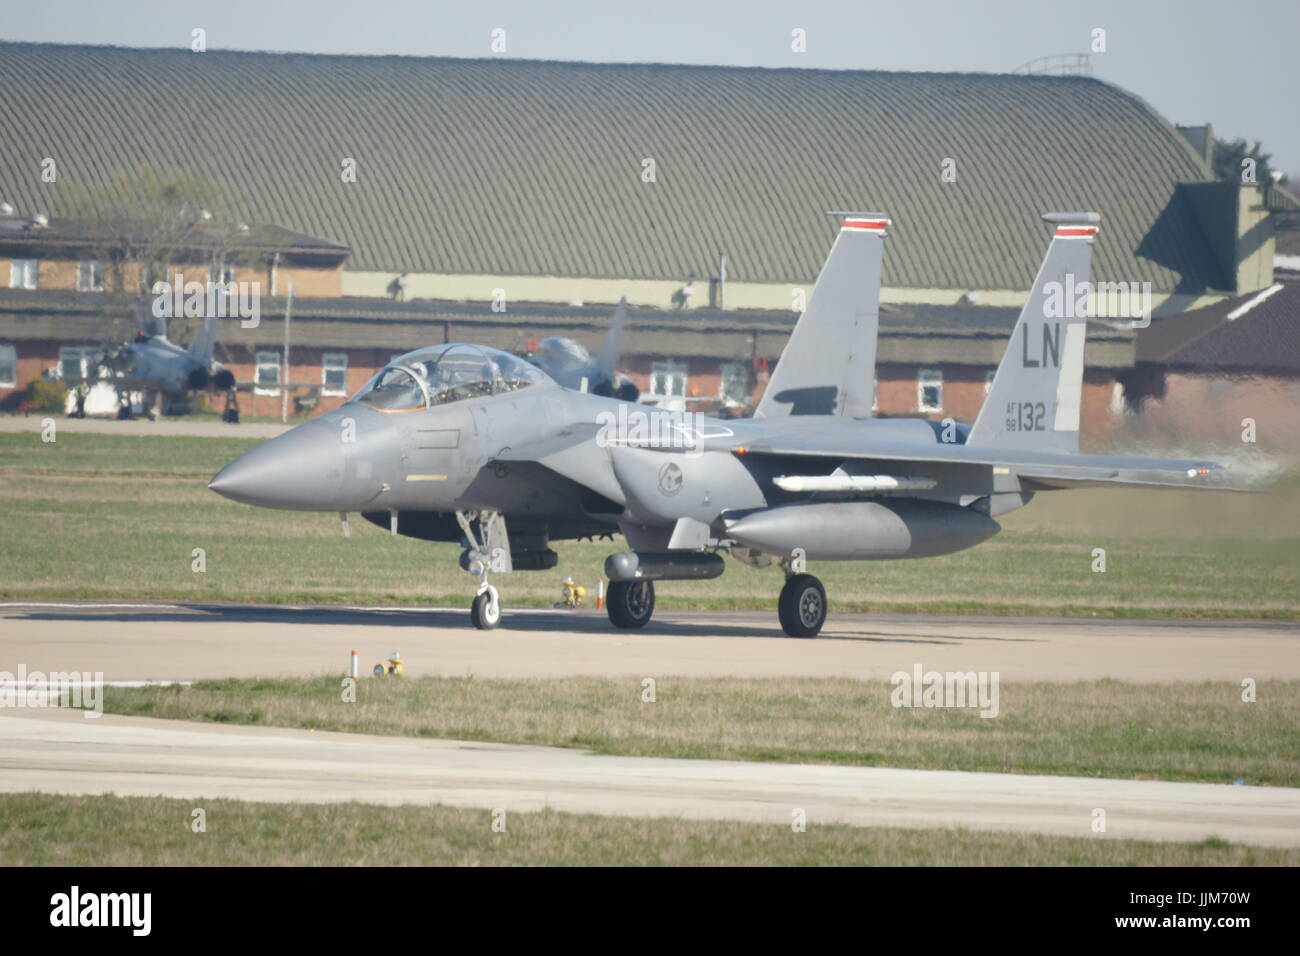 F-15 military American twin-engine, all-weather tactical fighter, Syrian conflict Stock Photo